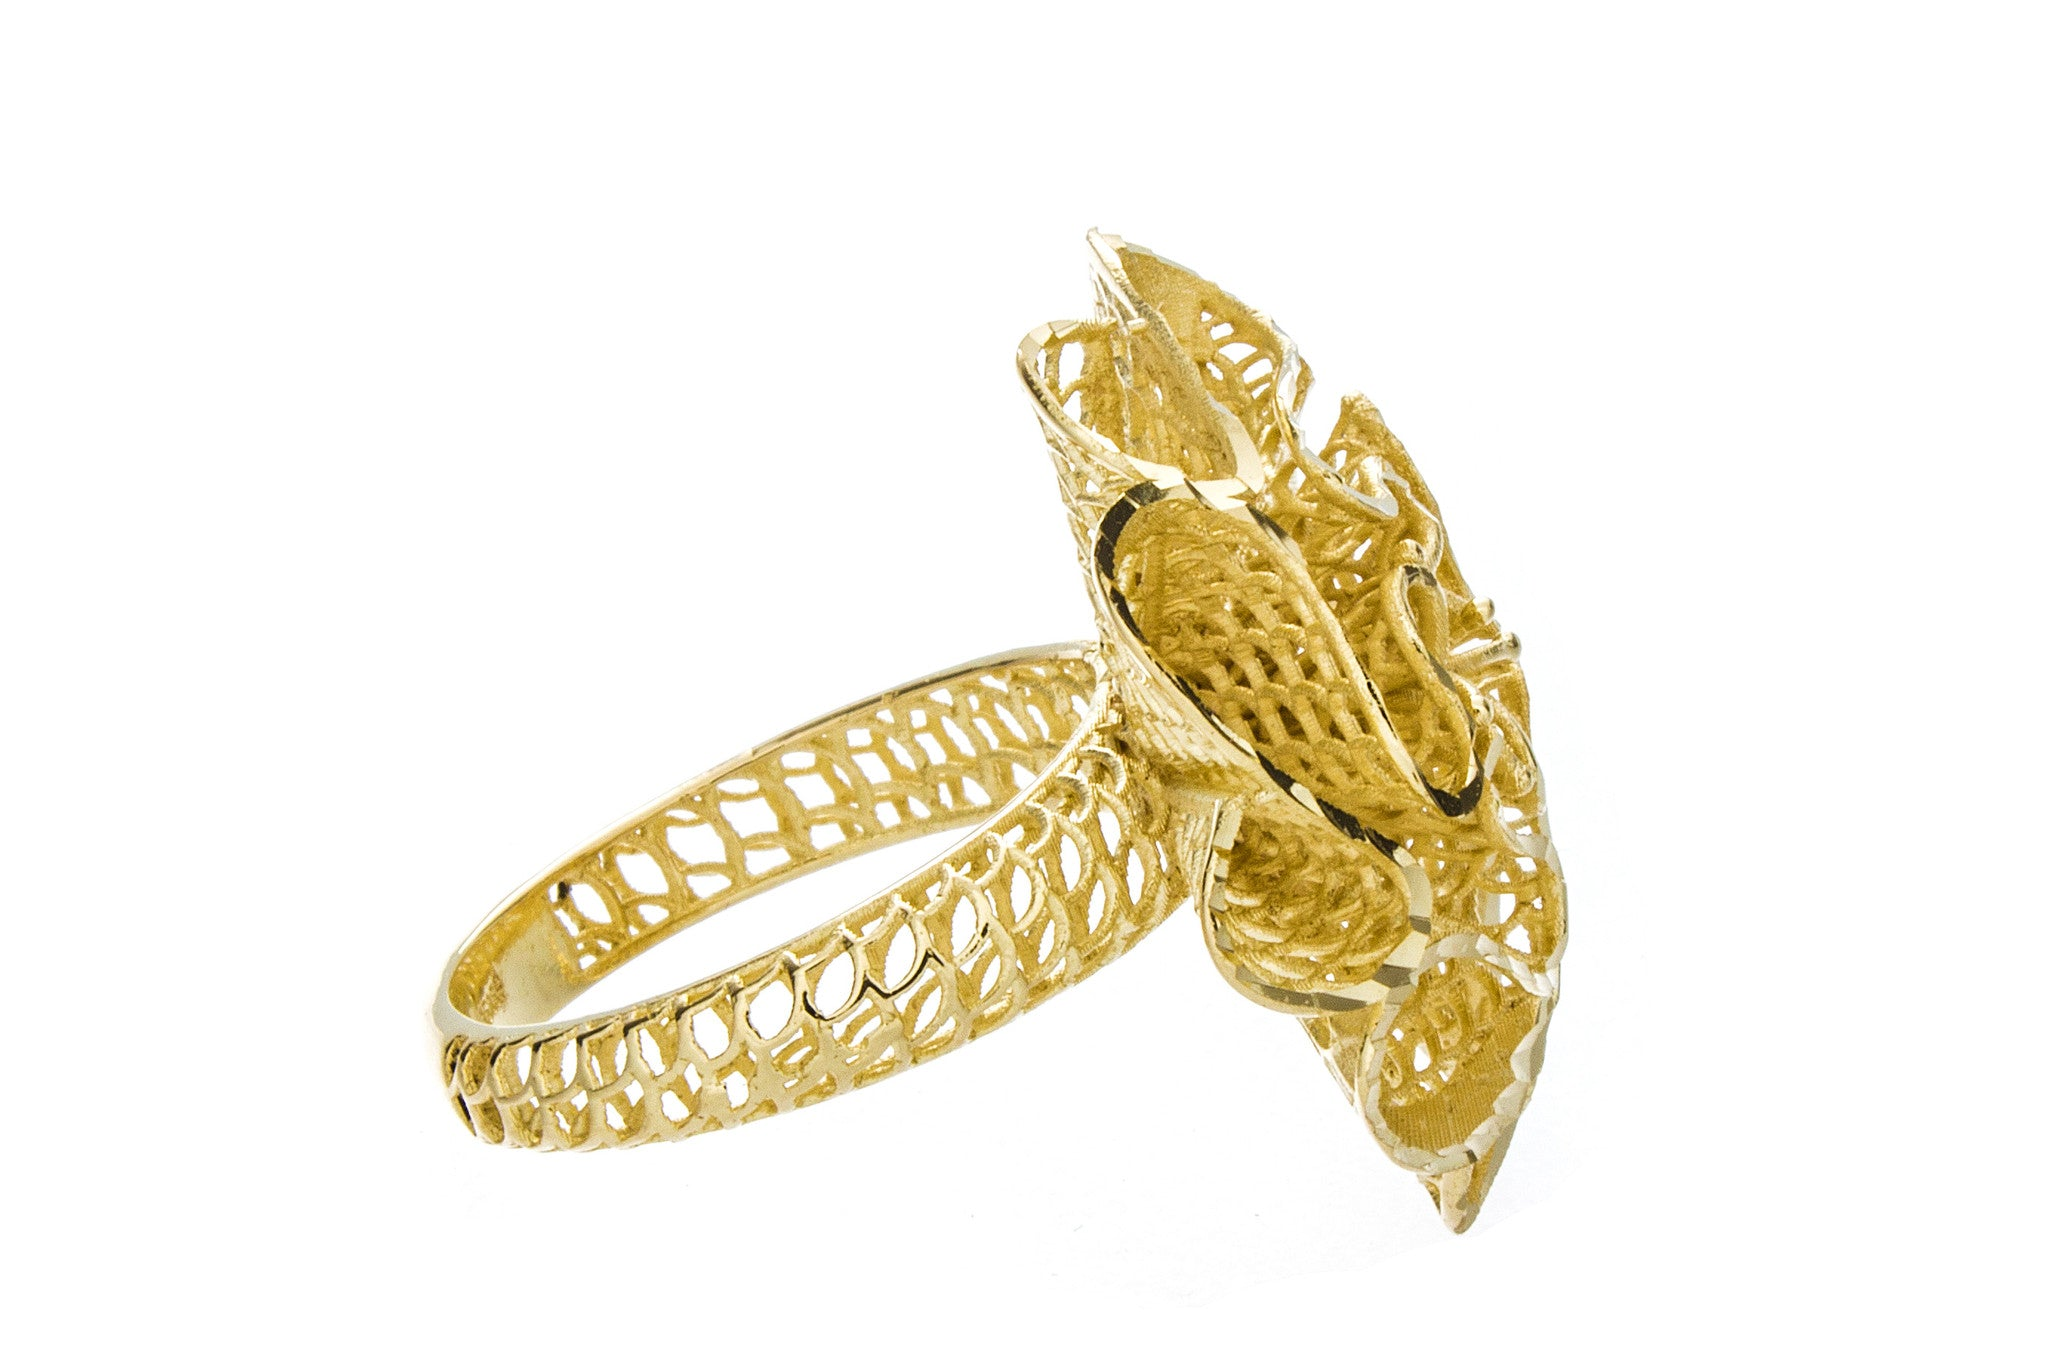 Yellow gold flower ring isaac westman yellow gold flower ring isaac westman 2 mightylinksfo